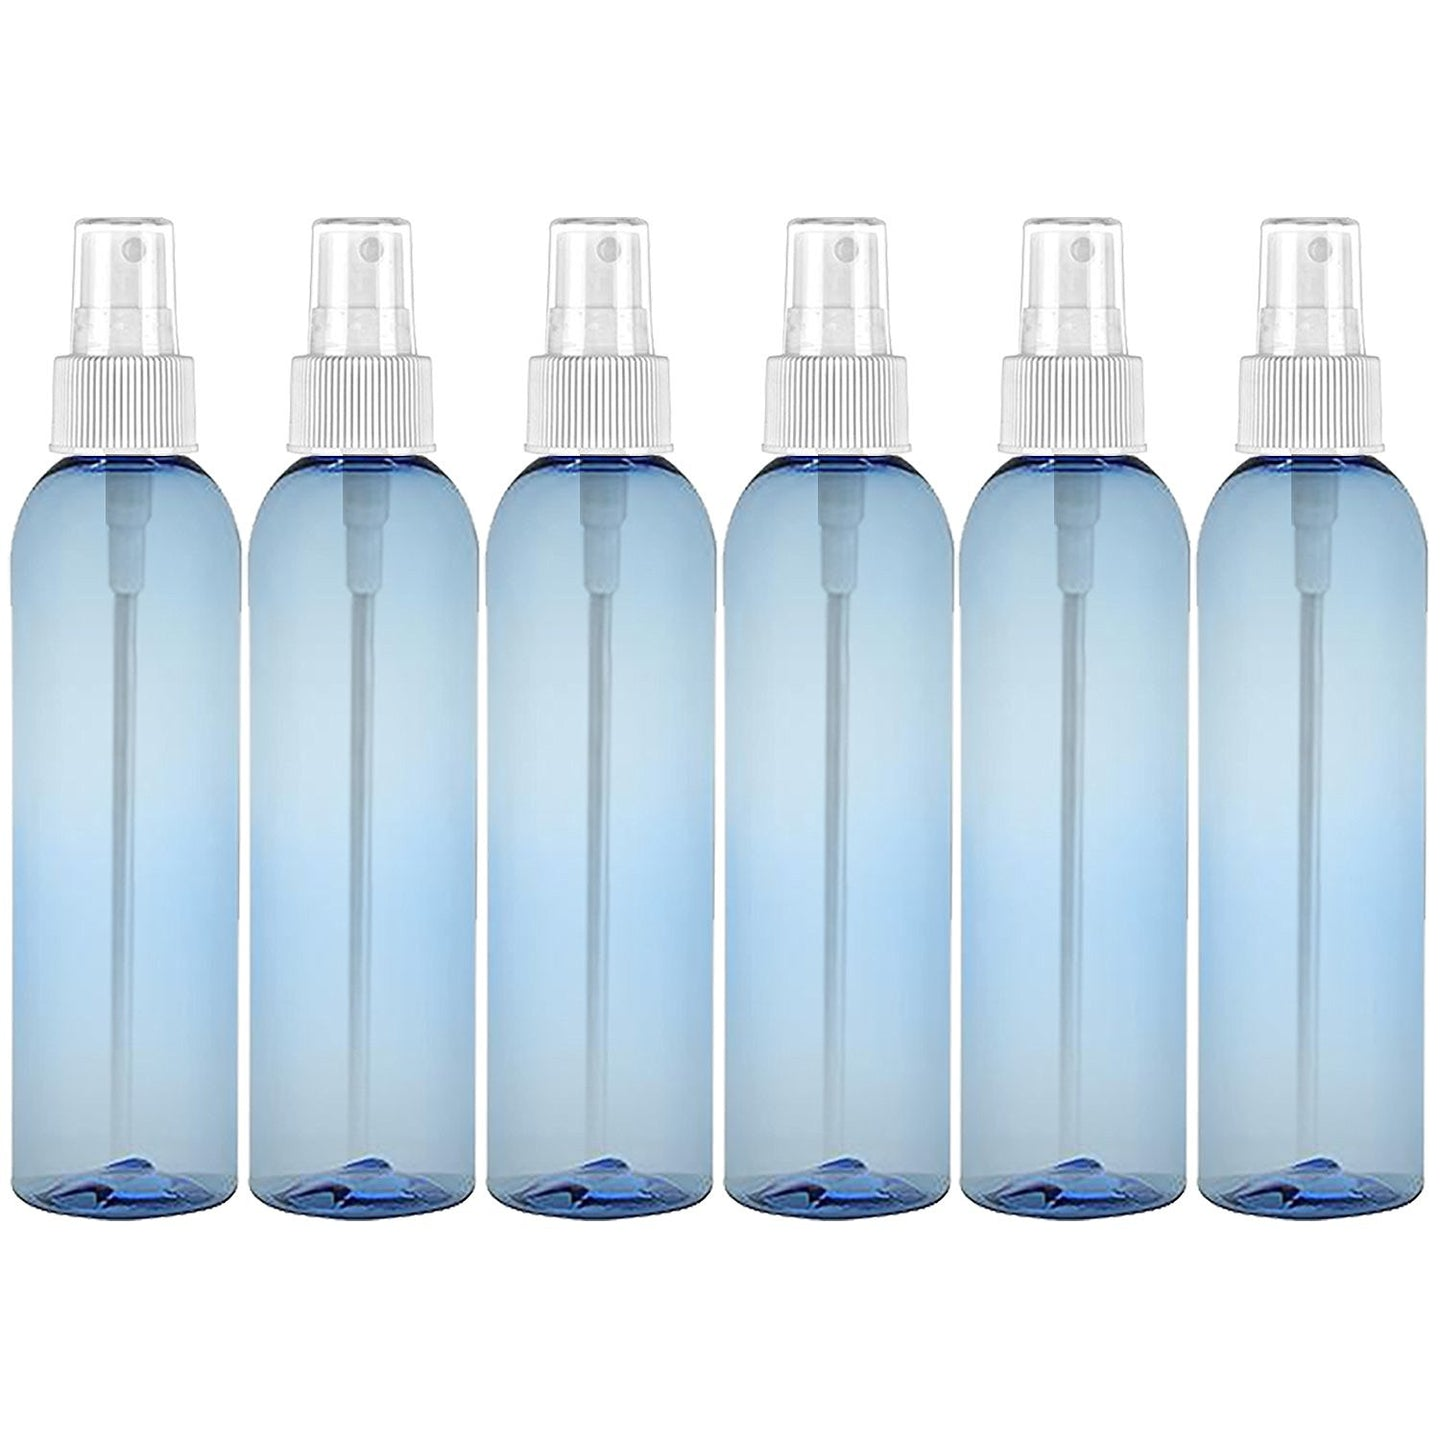 MoYo Natural Labs 8 oz Spray Bottle, Fine Mist Empty Travel Containers, BPA Free PET Plastic for Essential Oils and Liquids/Cosmetics (6 Pack, Light Blue)